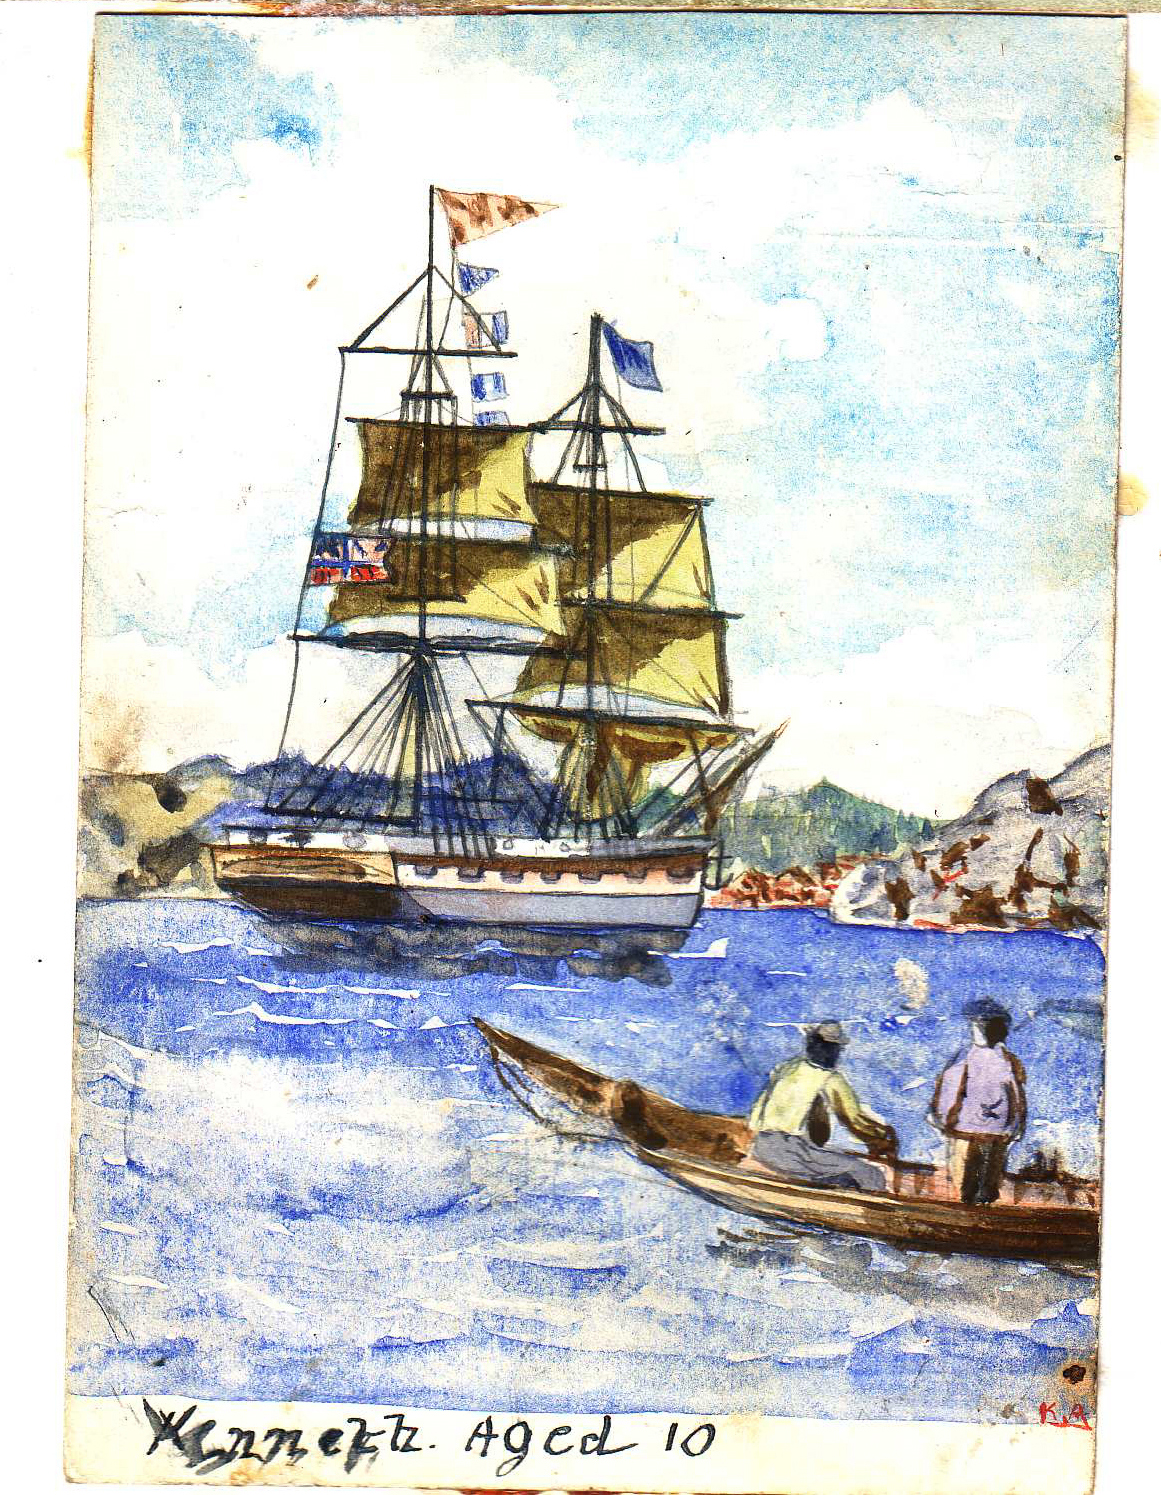 An earlier painting of a Brig. Probably Poole.Kenneth aged 10